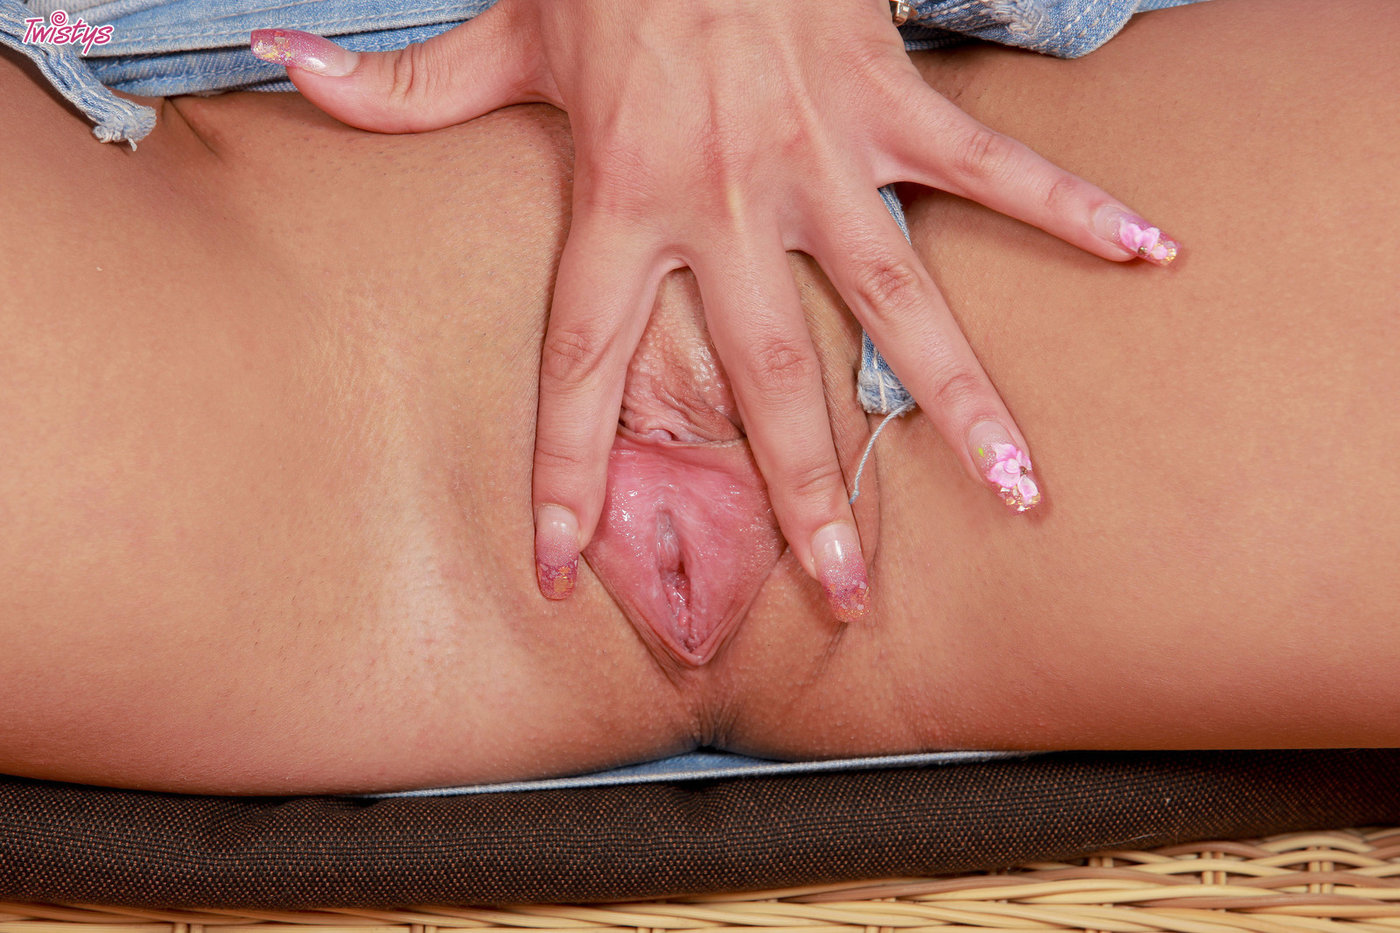 Finger Fucking Pussy Gifs